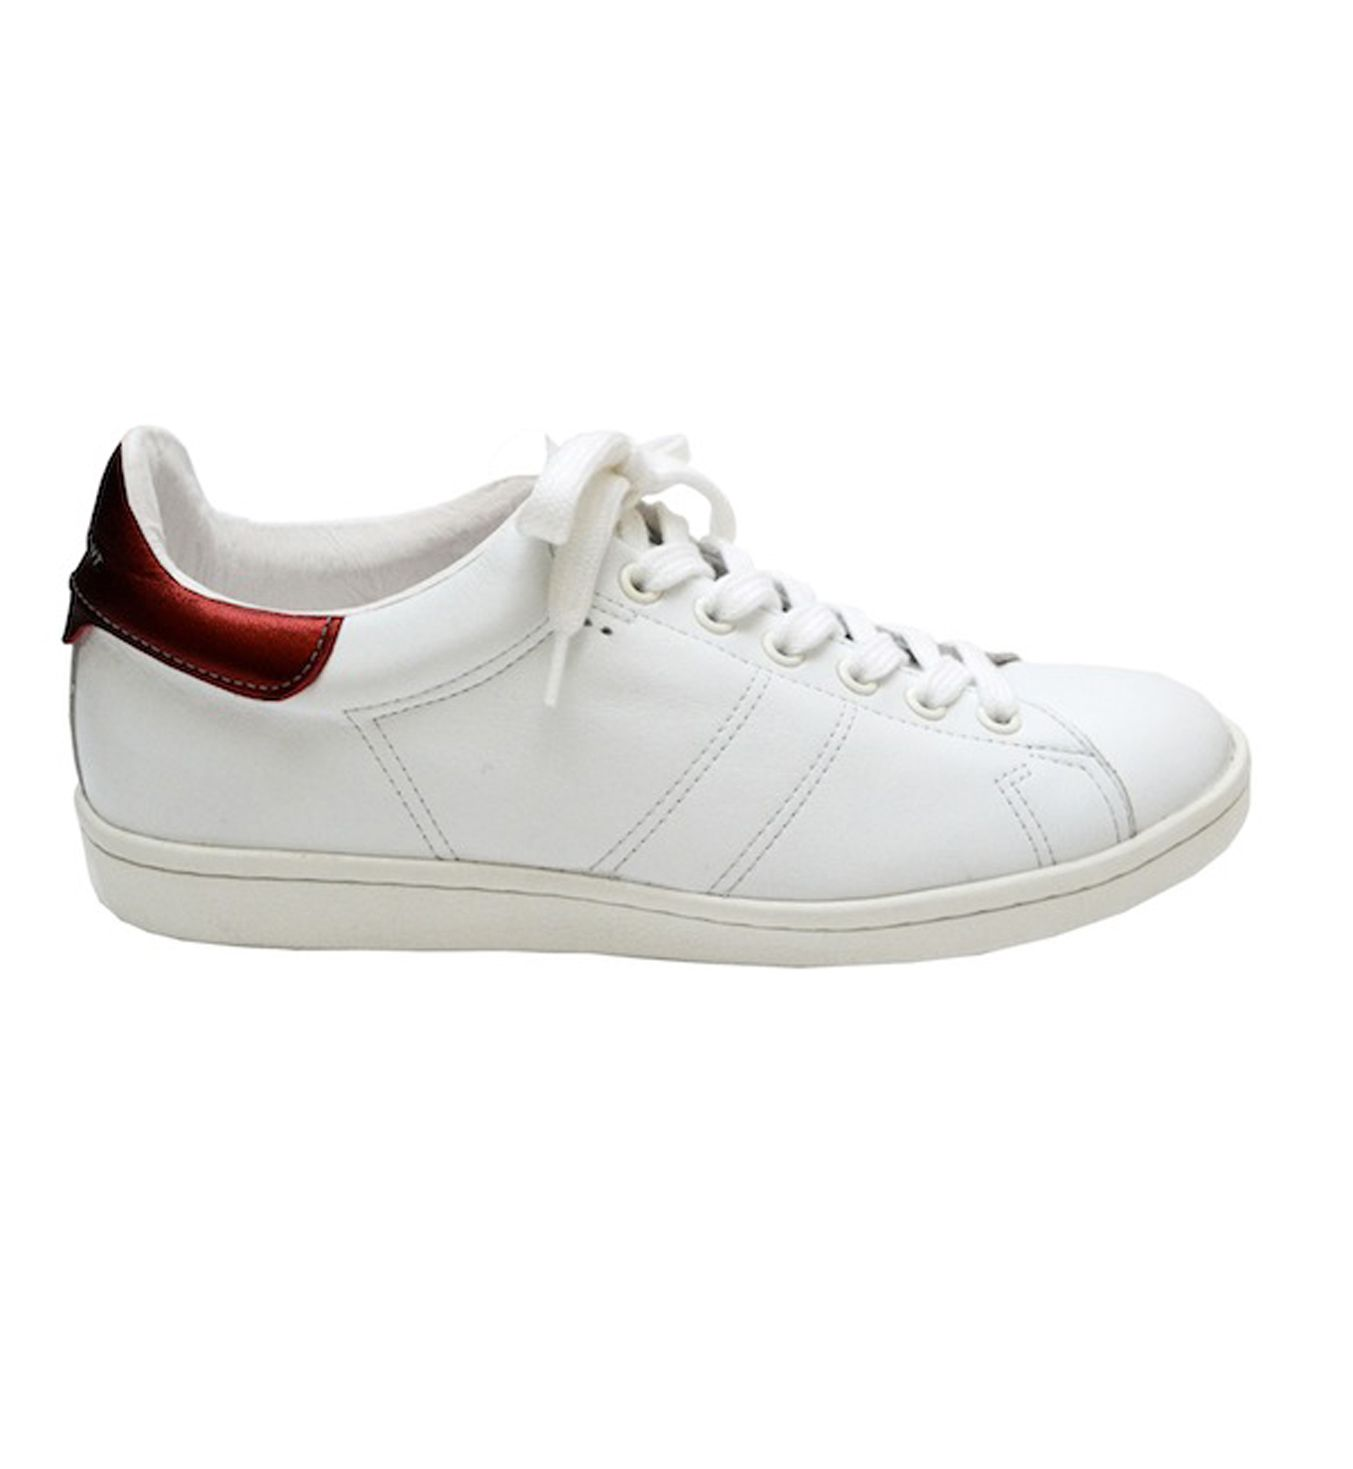 Isabel Marant's version of the Stan Smith - more on this: http://www.camilleovertherainbow.com/2014/04/the-fine-art-of-imitation.html